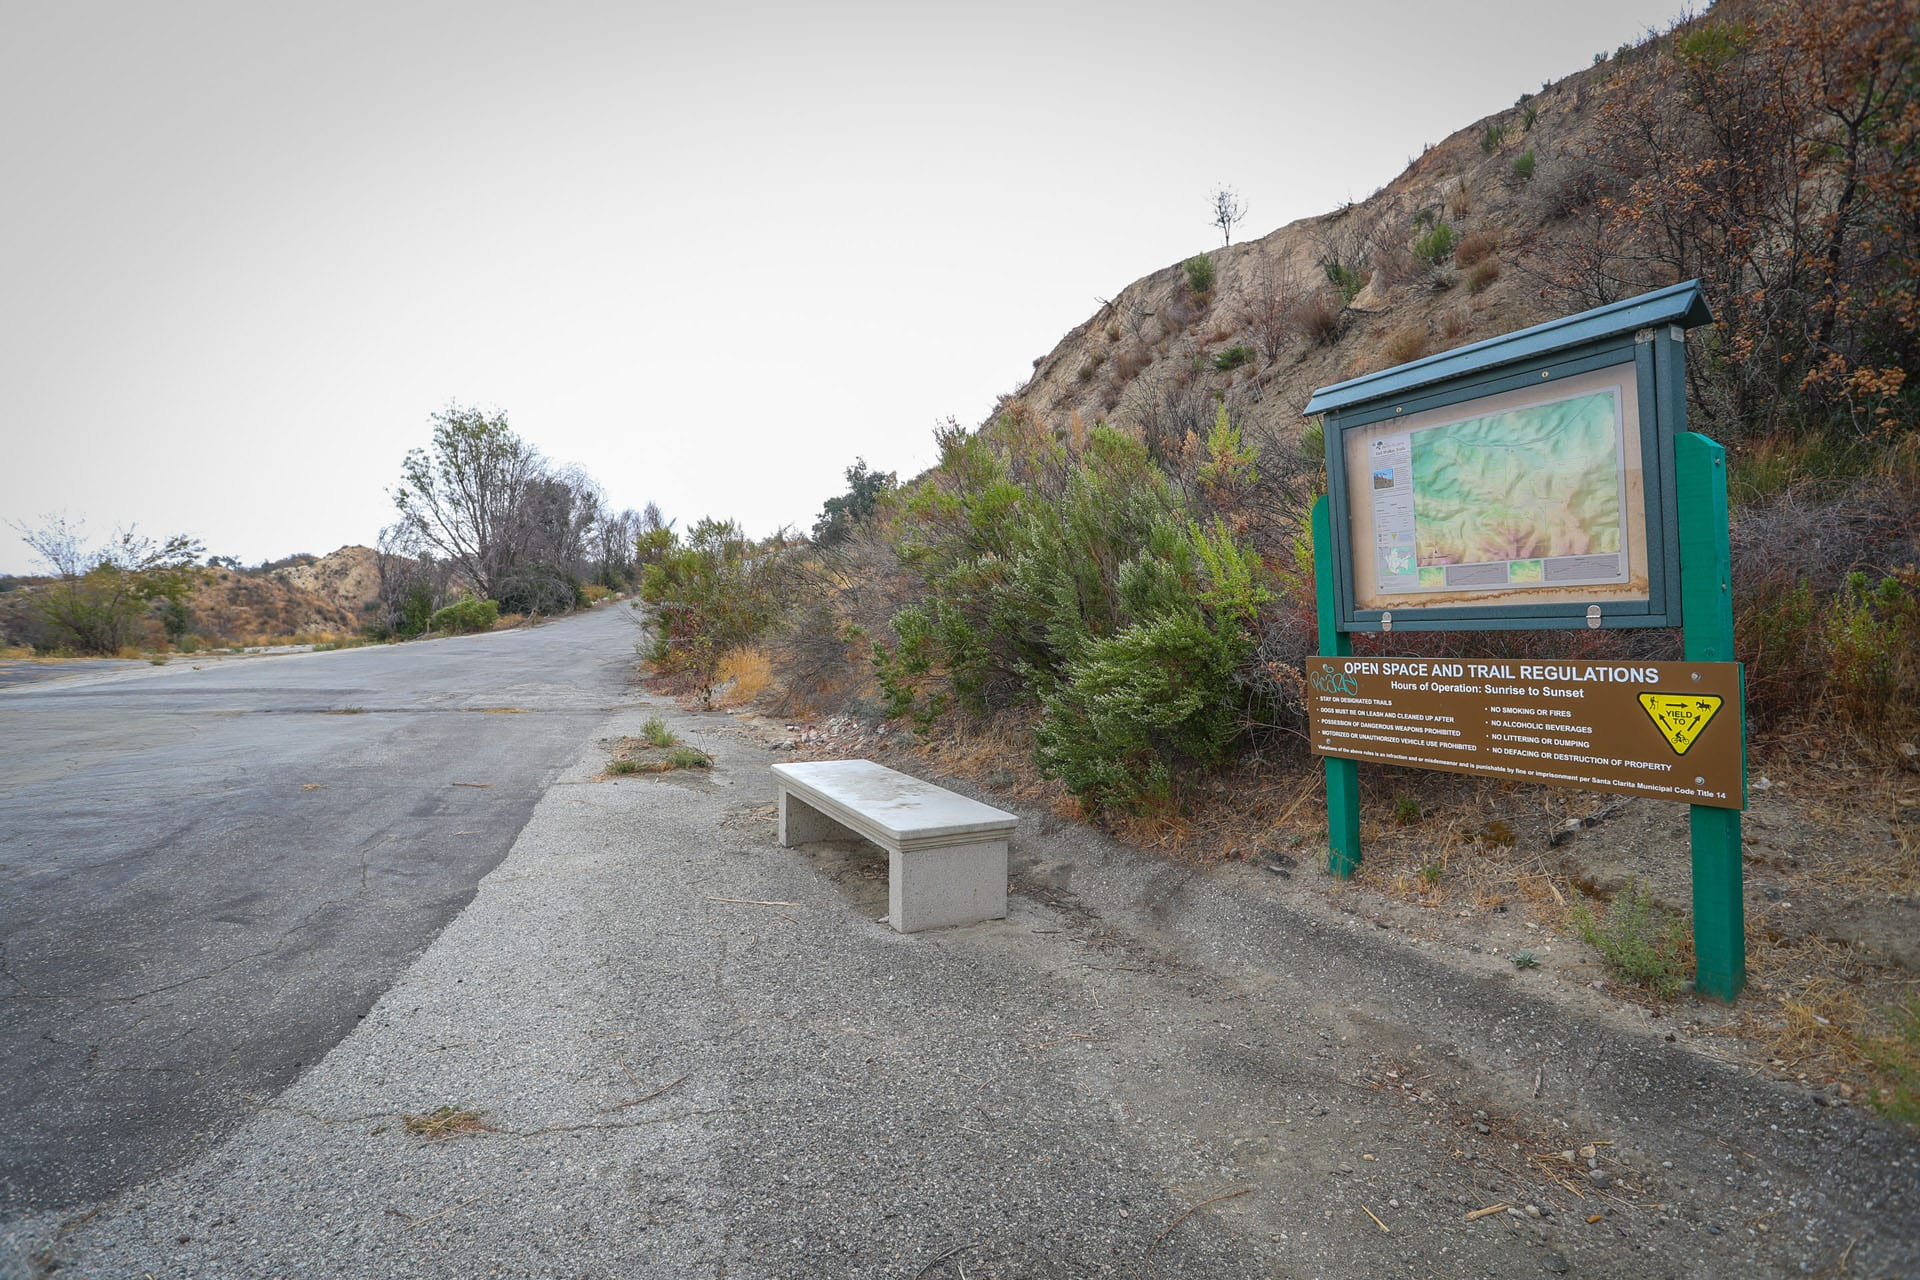 Sign and bench next to paved path